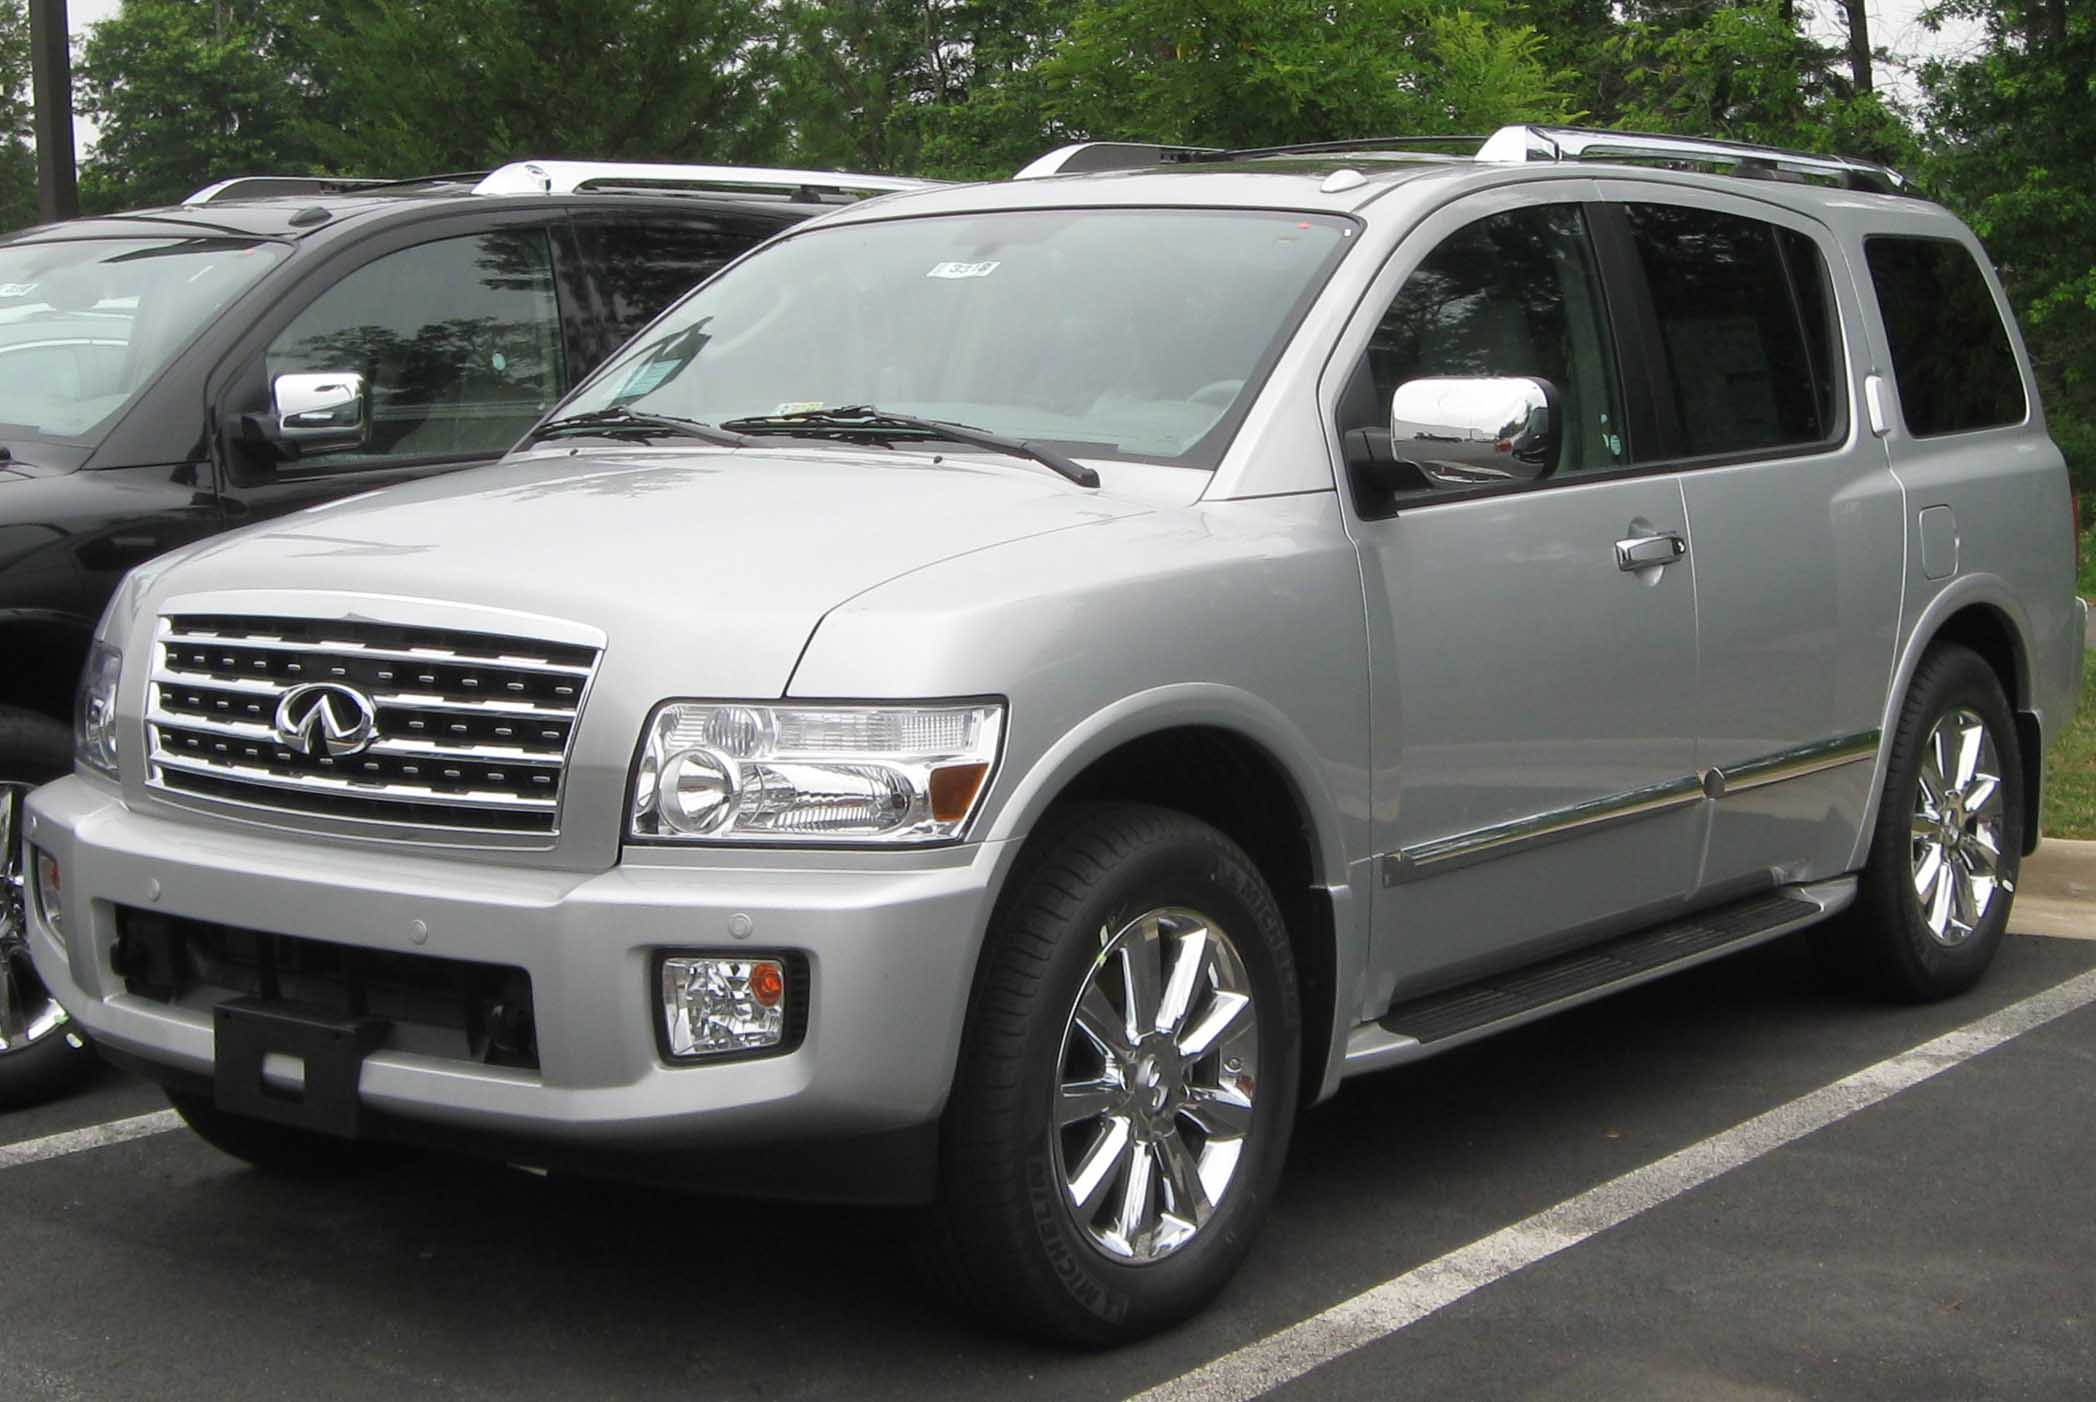 2004 infiniti qx56 information and photos zombiedrive. Black Bedroom Furniture Sets. Home Design Ideas